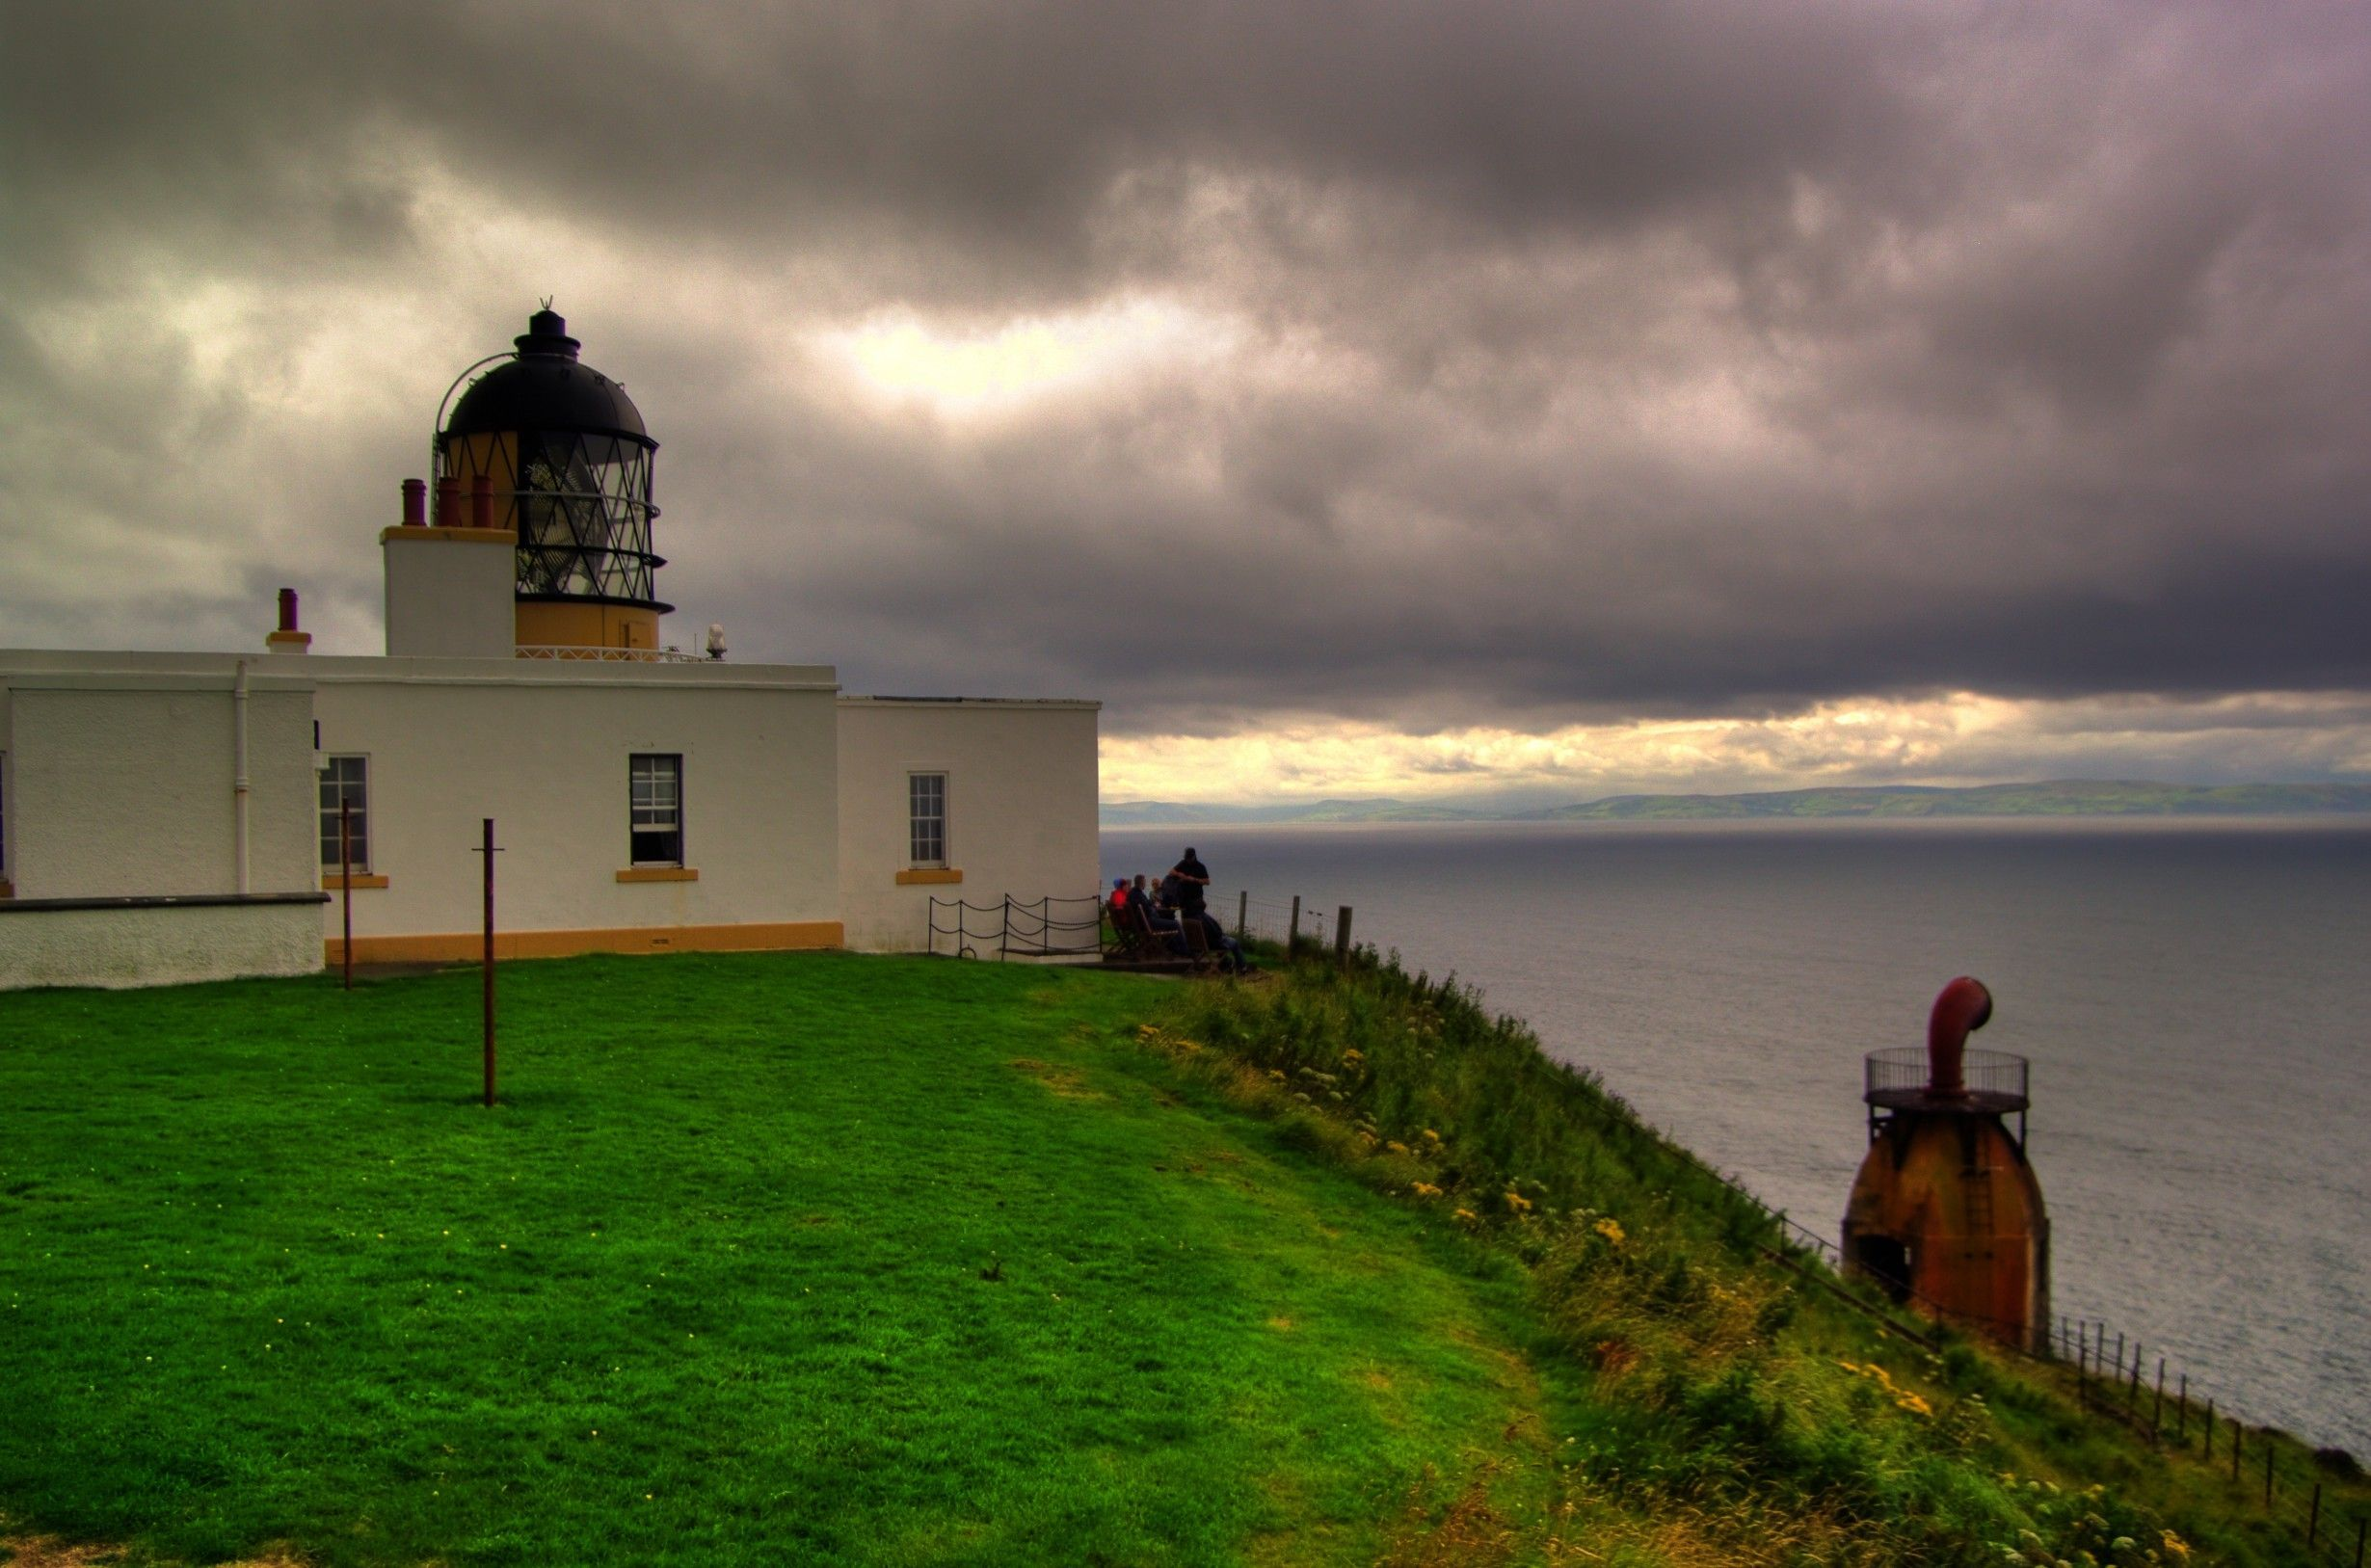 Mull of Kintyre Lighthouse. I want to visit here someday, when I return to Scotland.